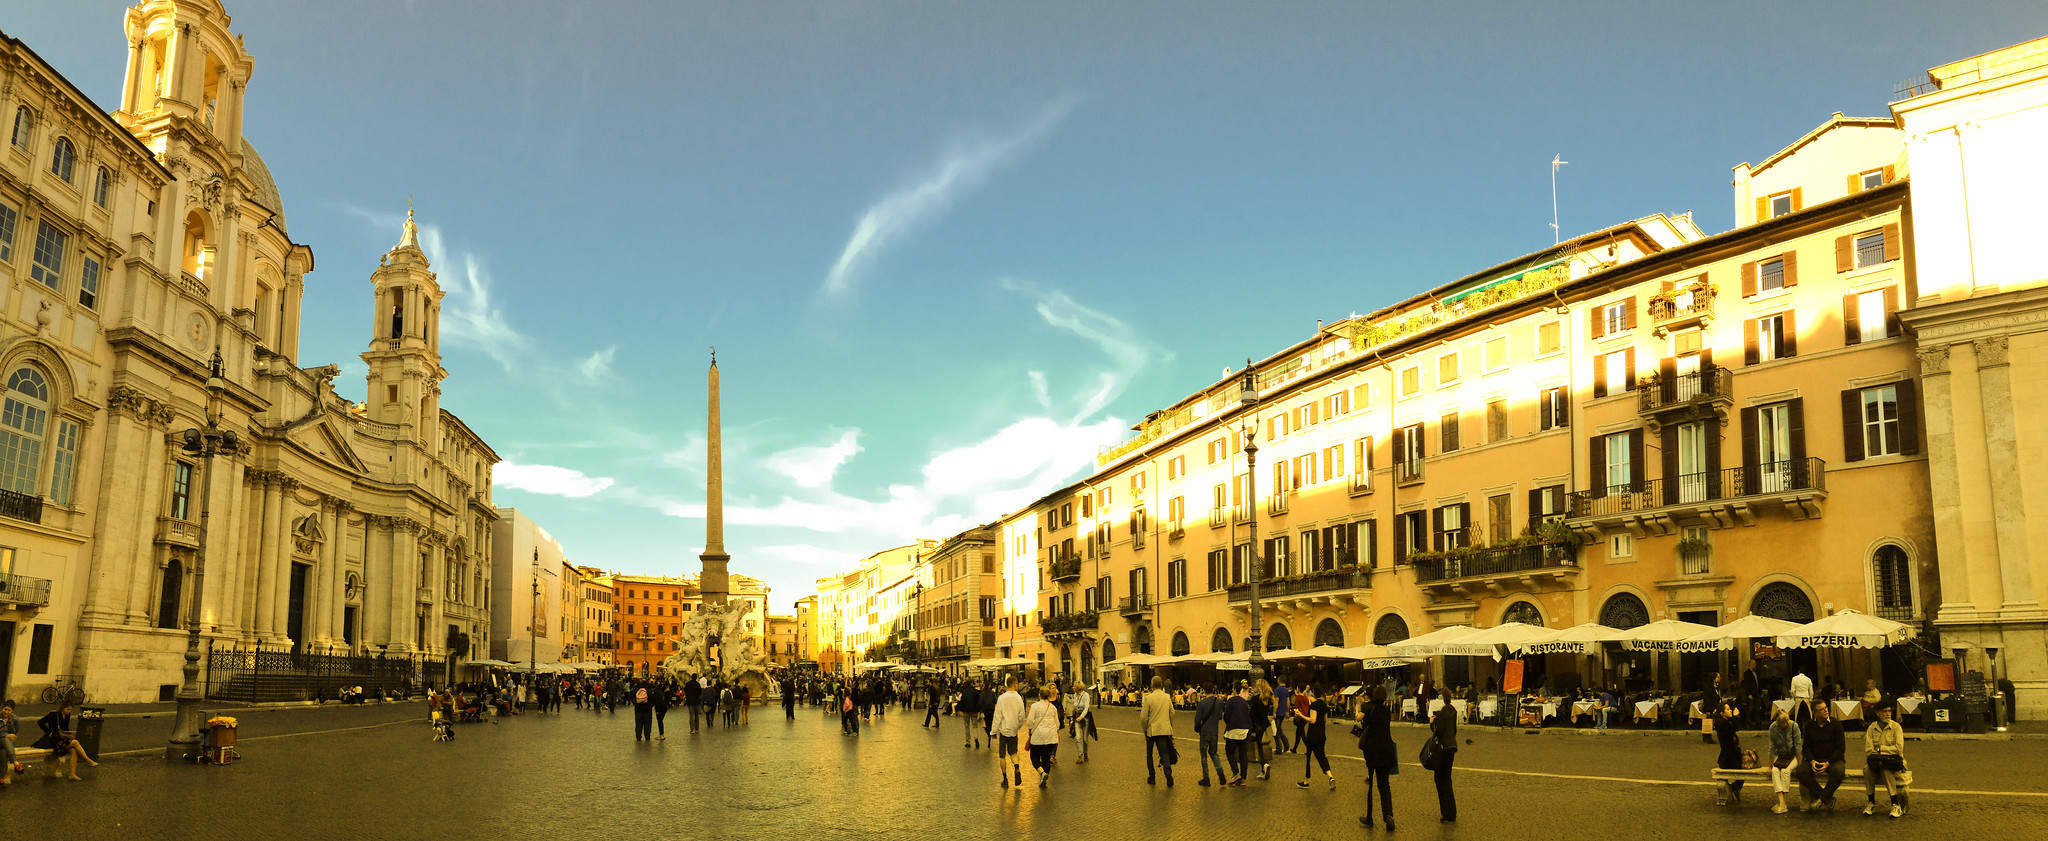 Piazza Navona , central Rome's elegant showcase square.